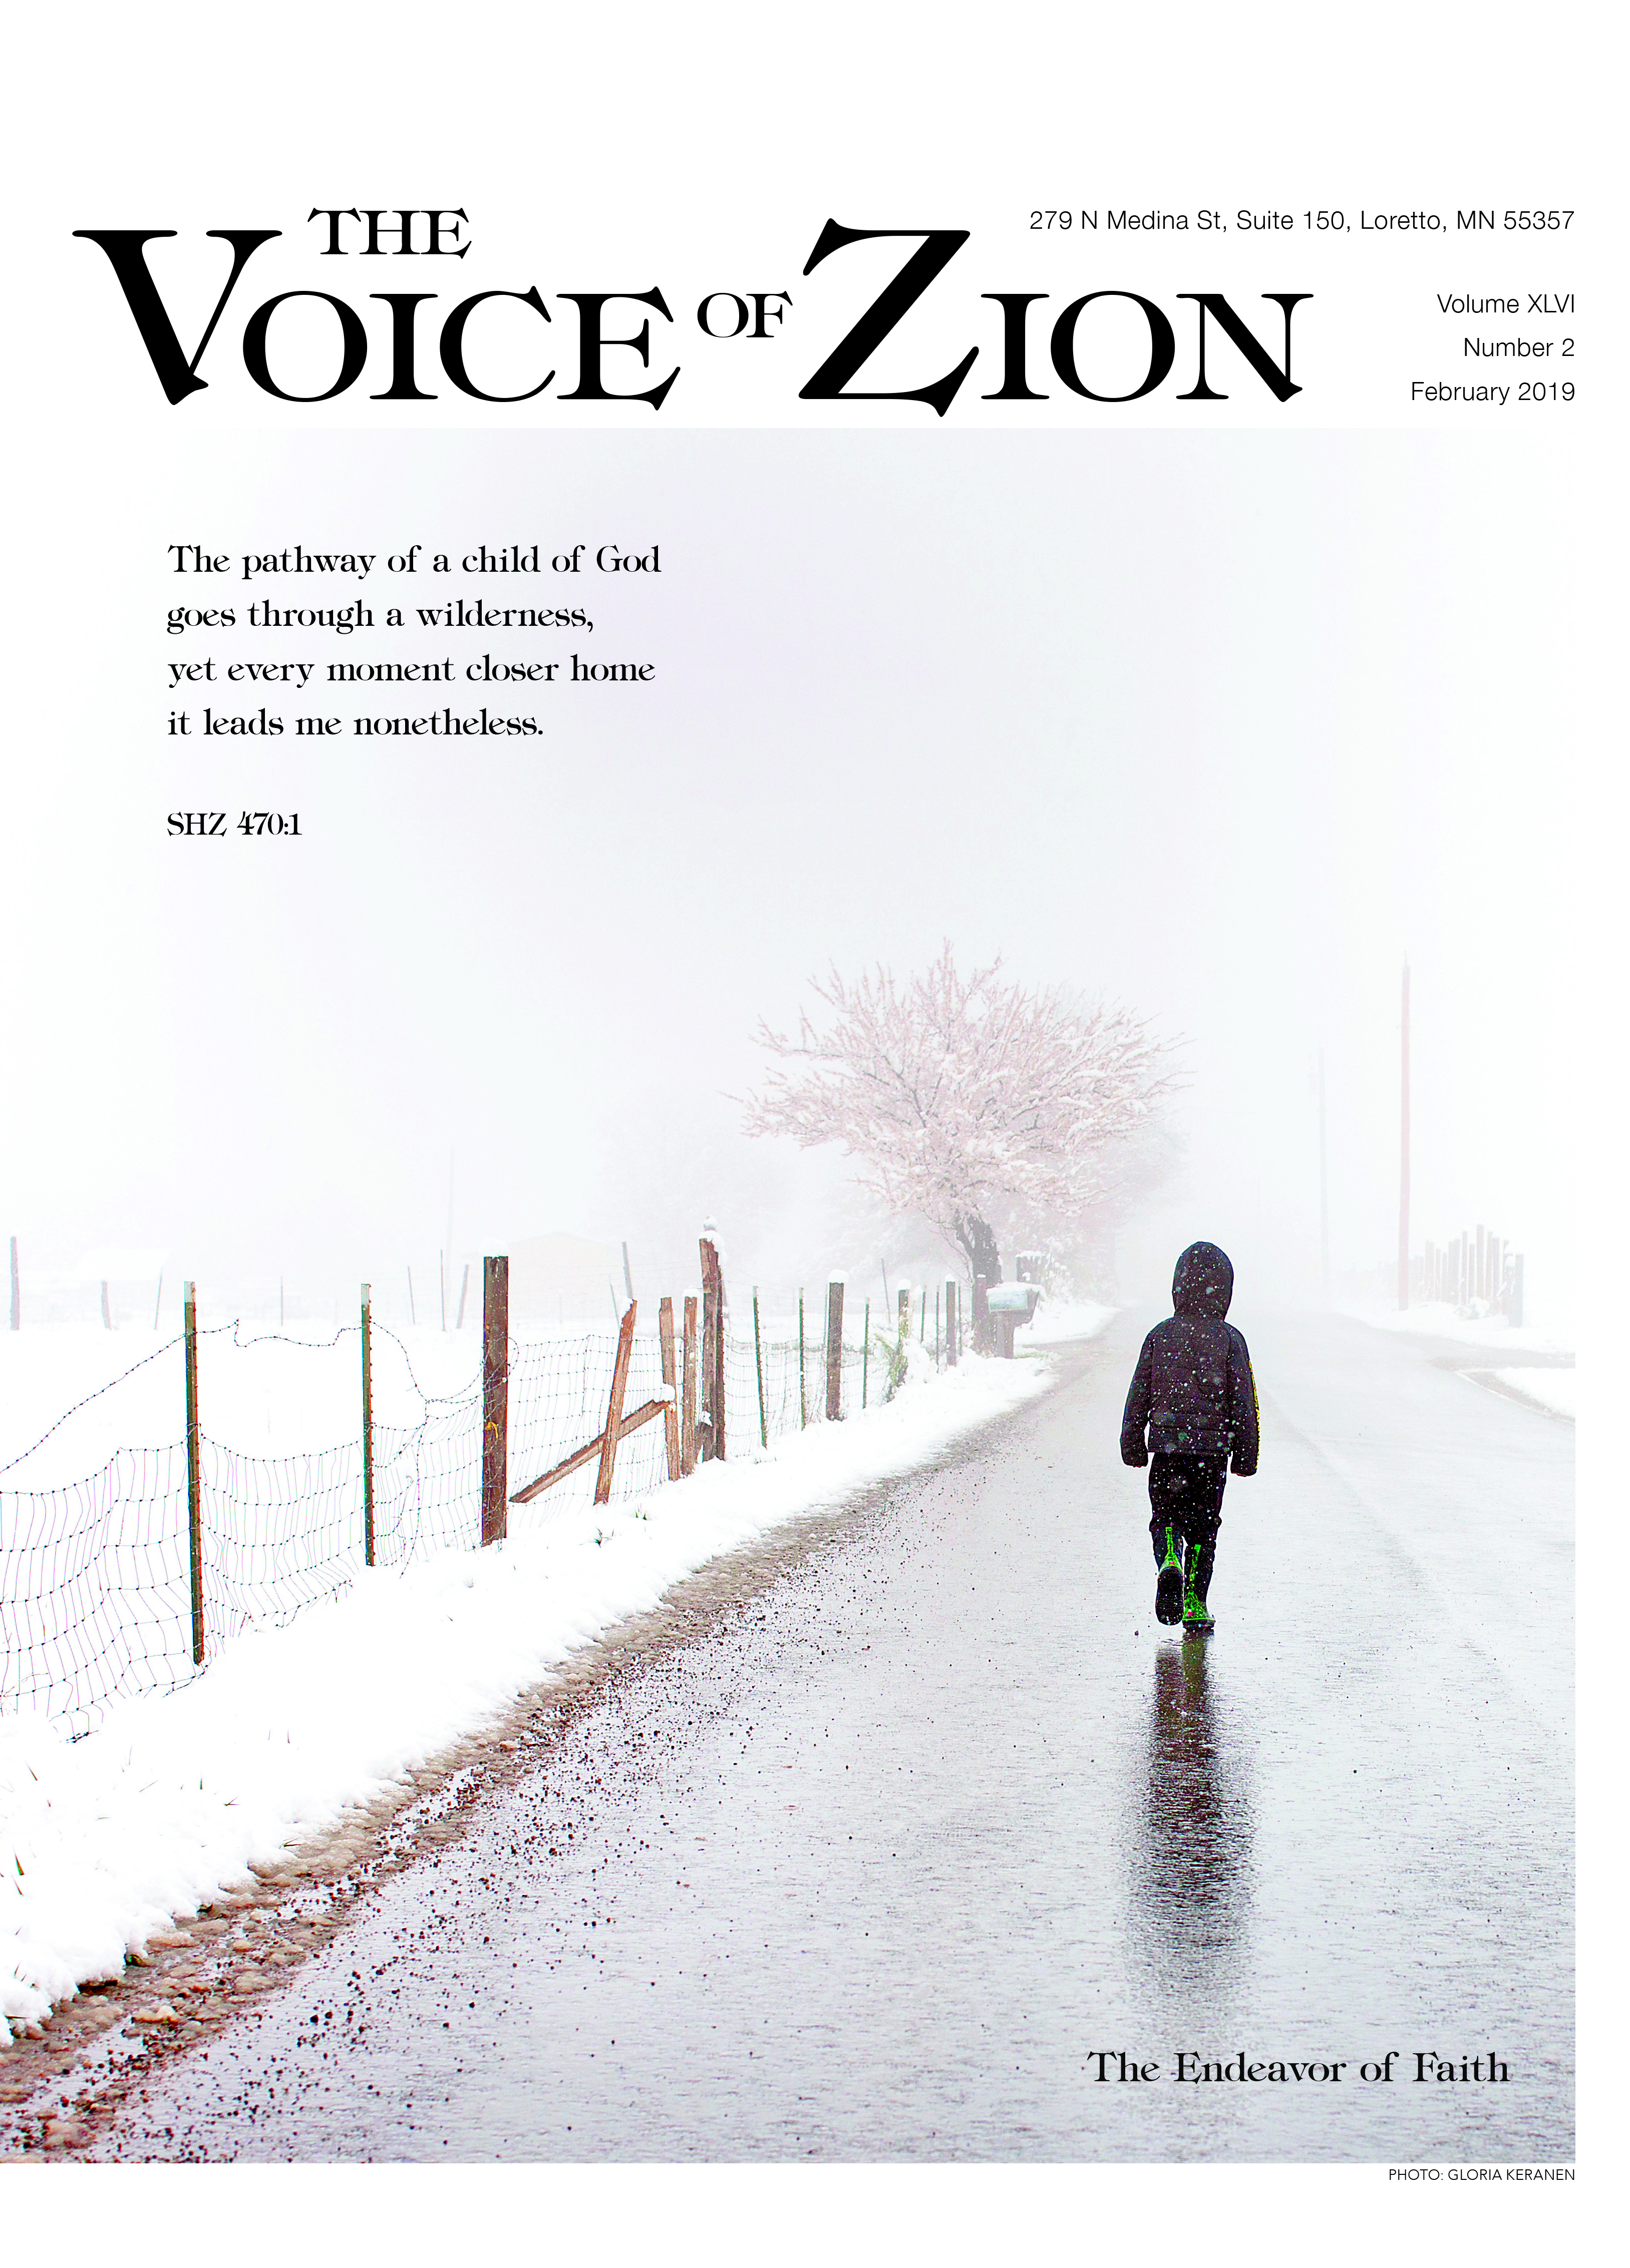 Voice of Zion